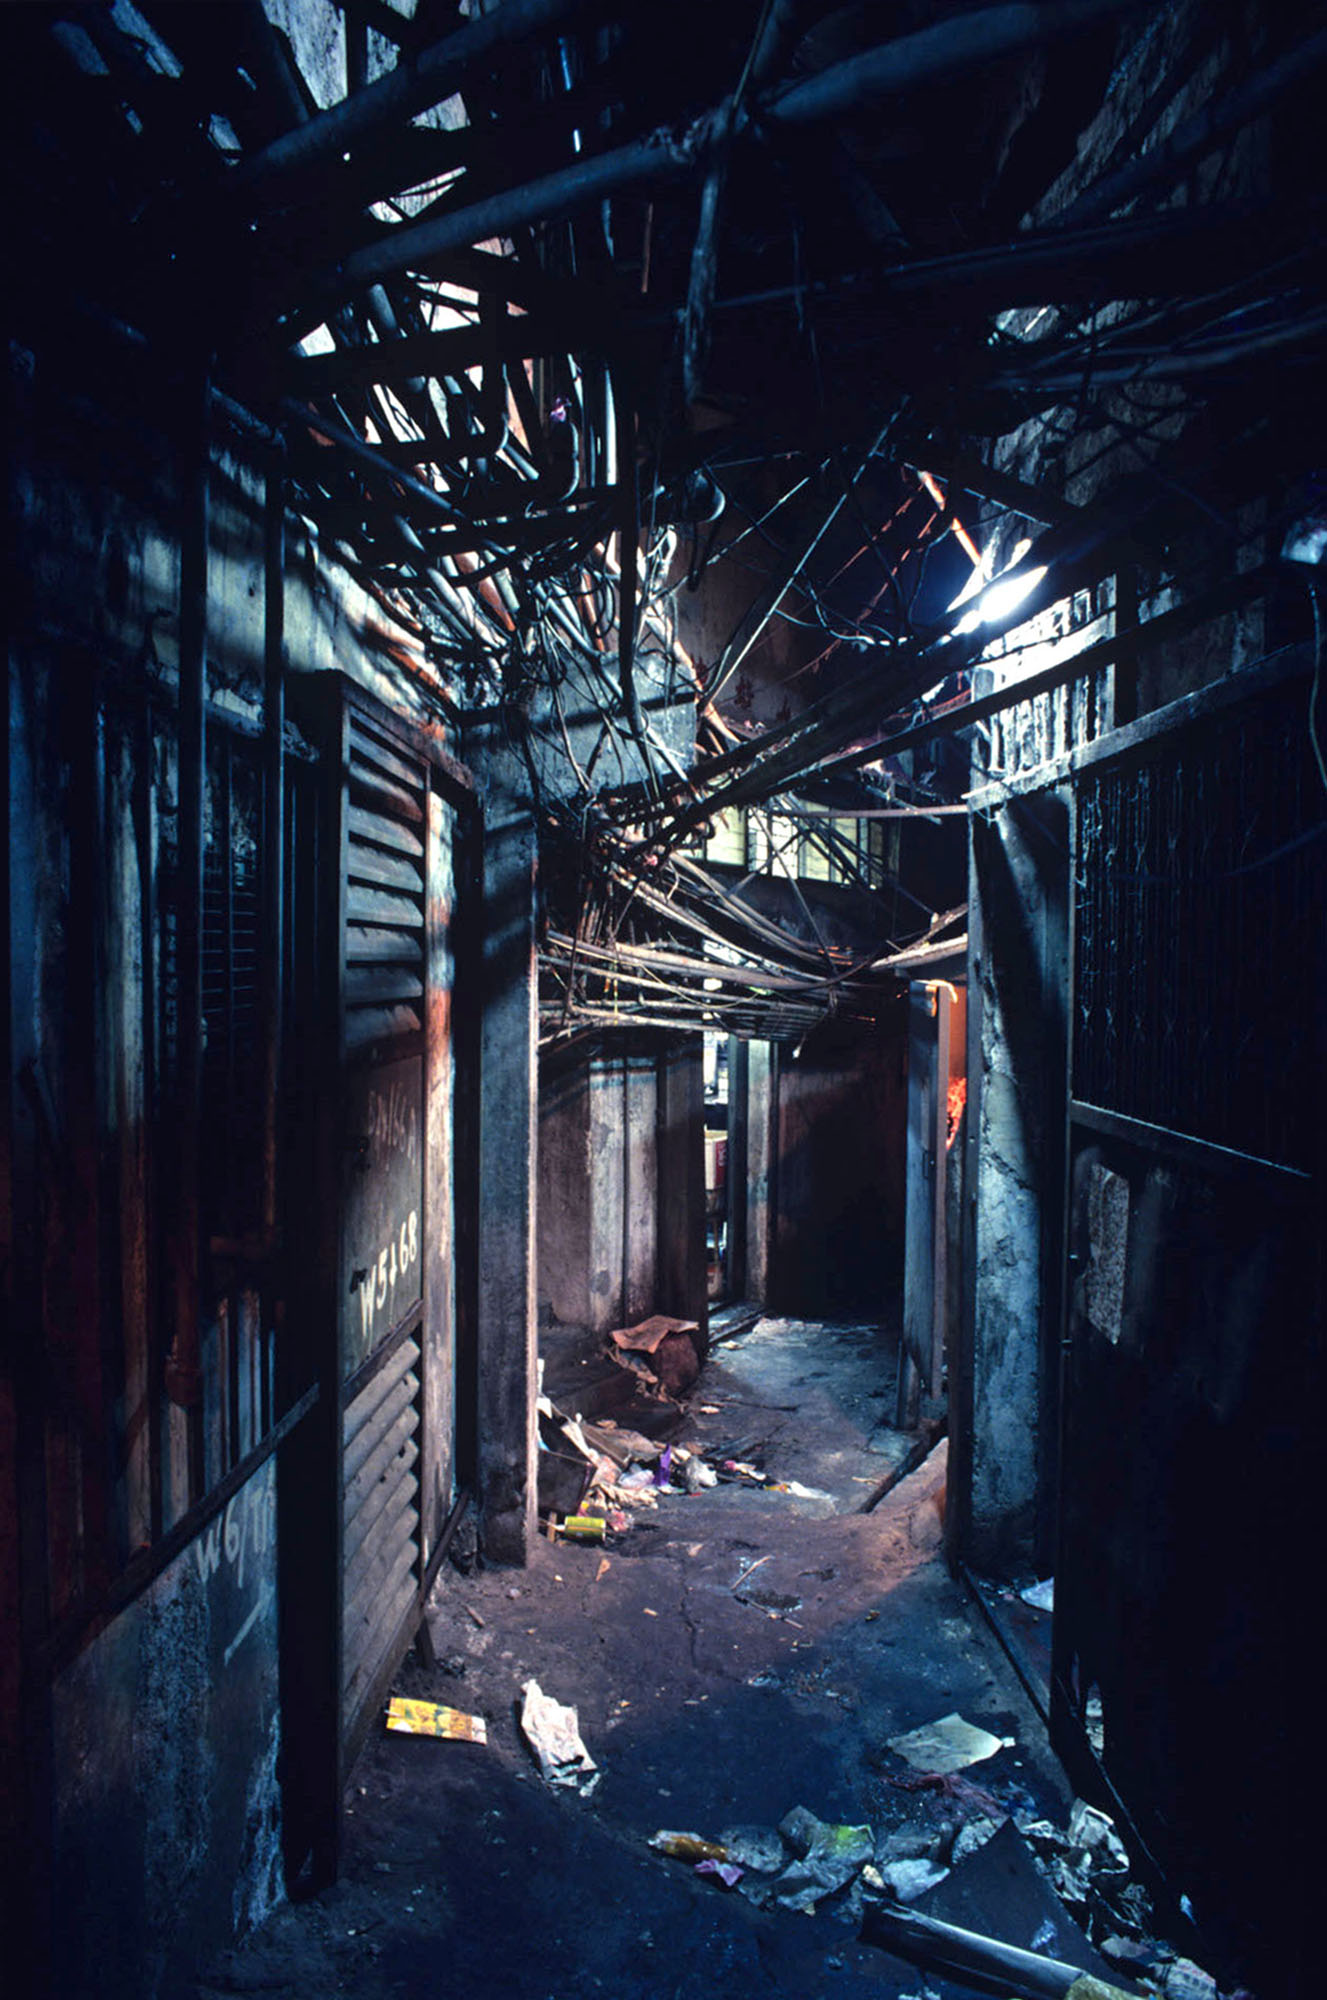 West Side Street (with Overhead Pipes), 1990